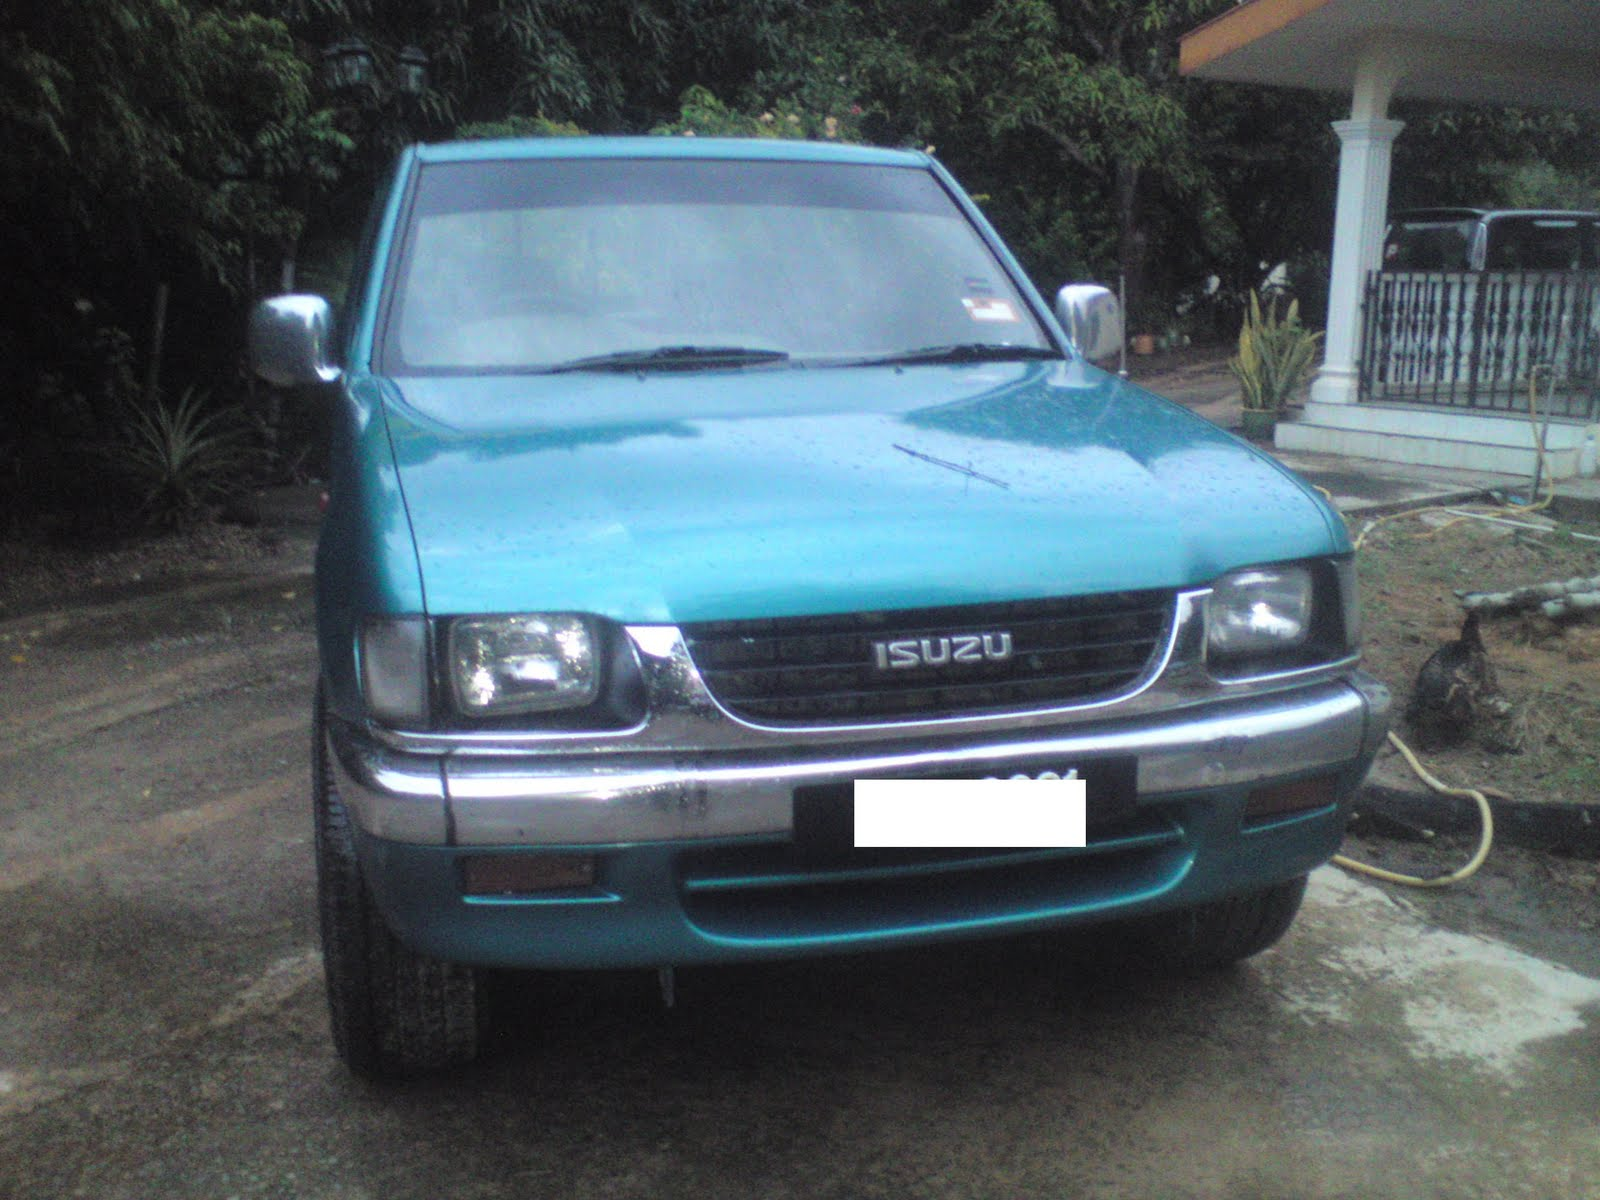 Isuzu invader photo - 3